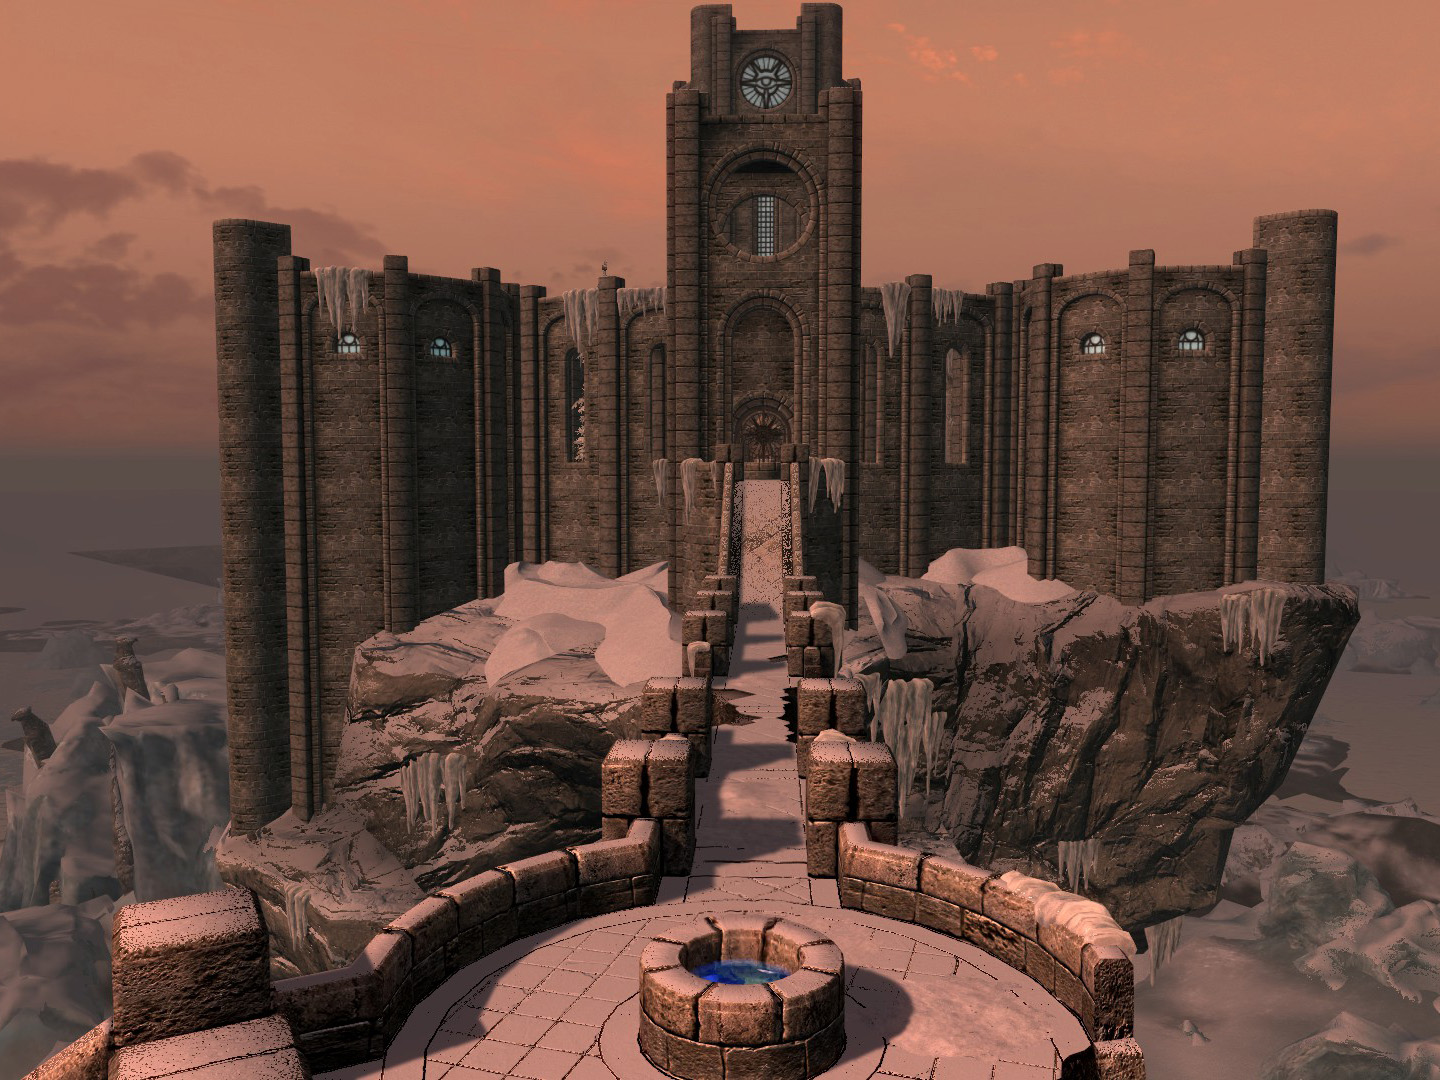 winterhold_entrance